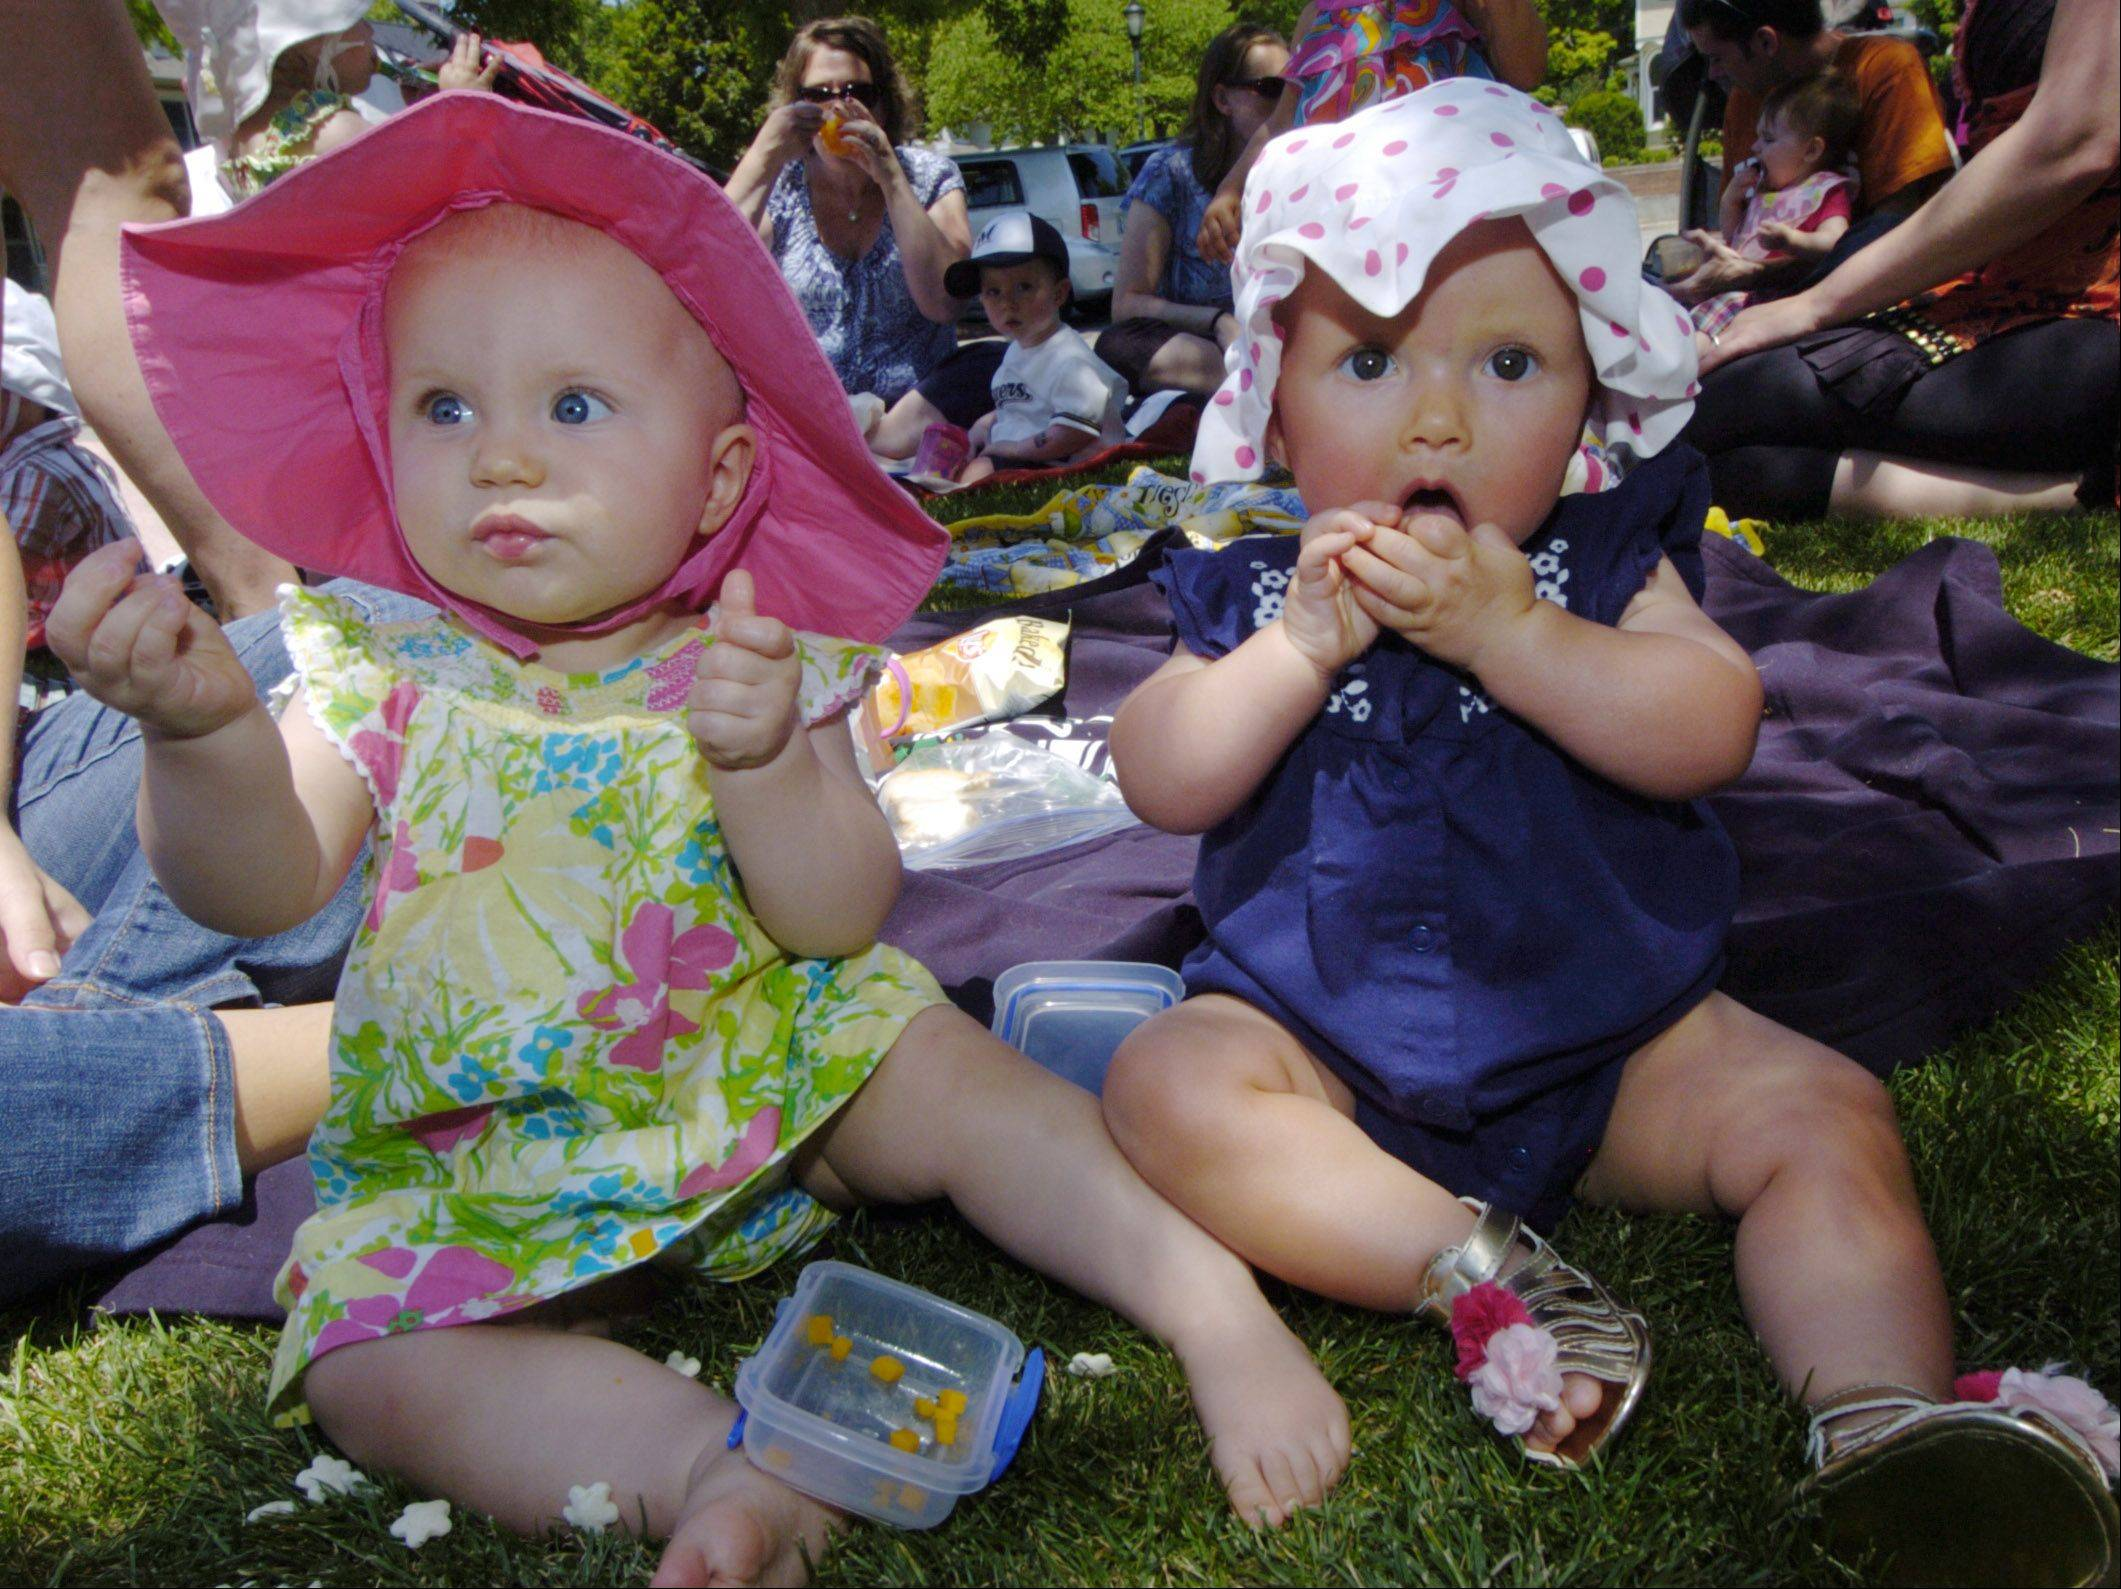 Katherine Edwards, age 10 months, left, of Arlington Heights and Gianna Suvada, also 10 months, of Schaumburg have lunch together as the Arlington Park District kicks off summer with a picnic at North School Park Friday.